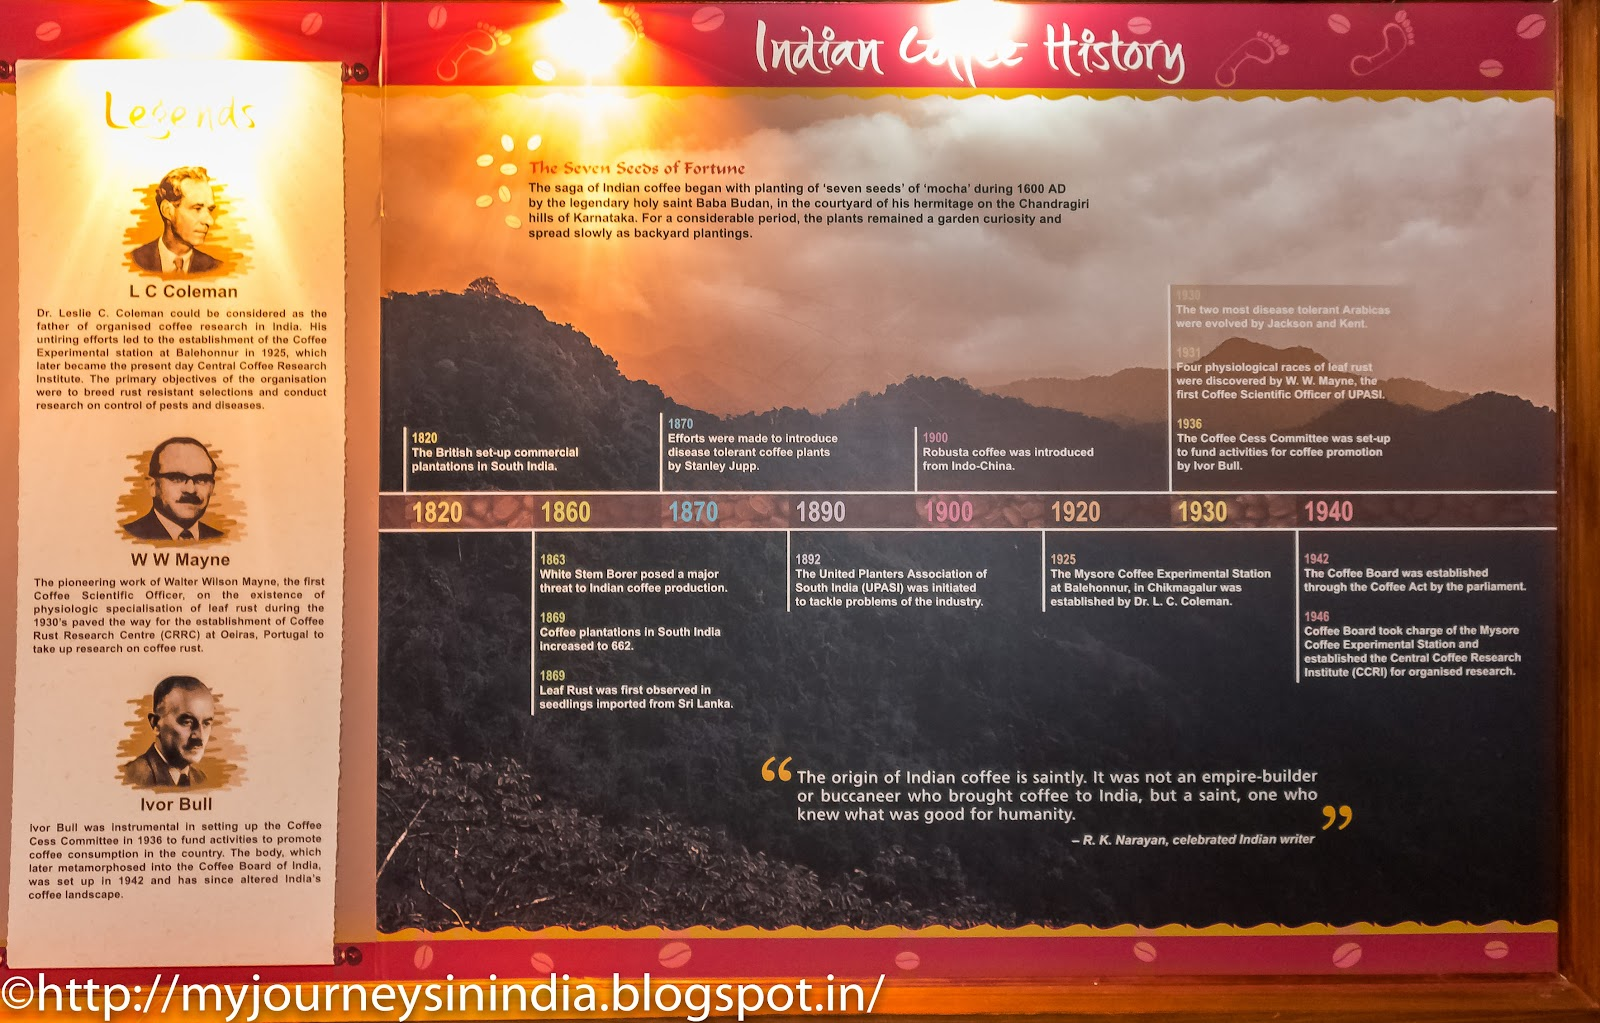 Chikmagalur India  city images : Indian Coffee History display at Coffee Museum Chikmagalur